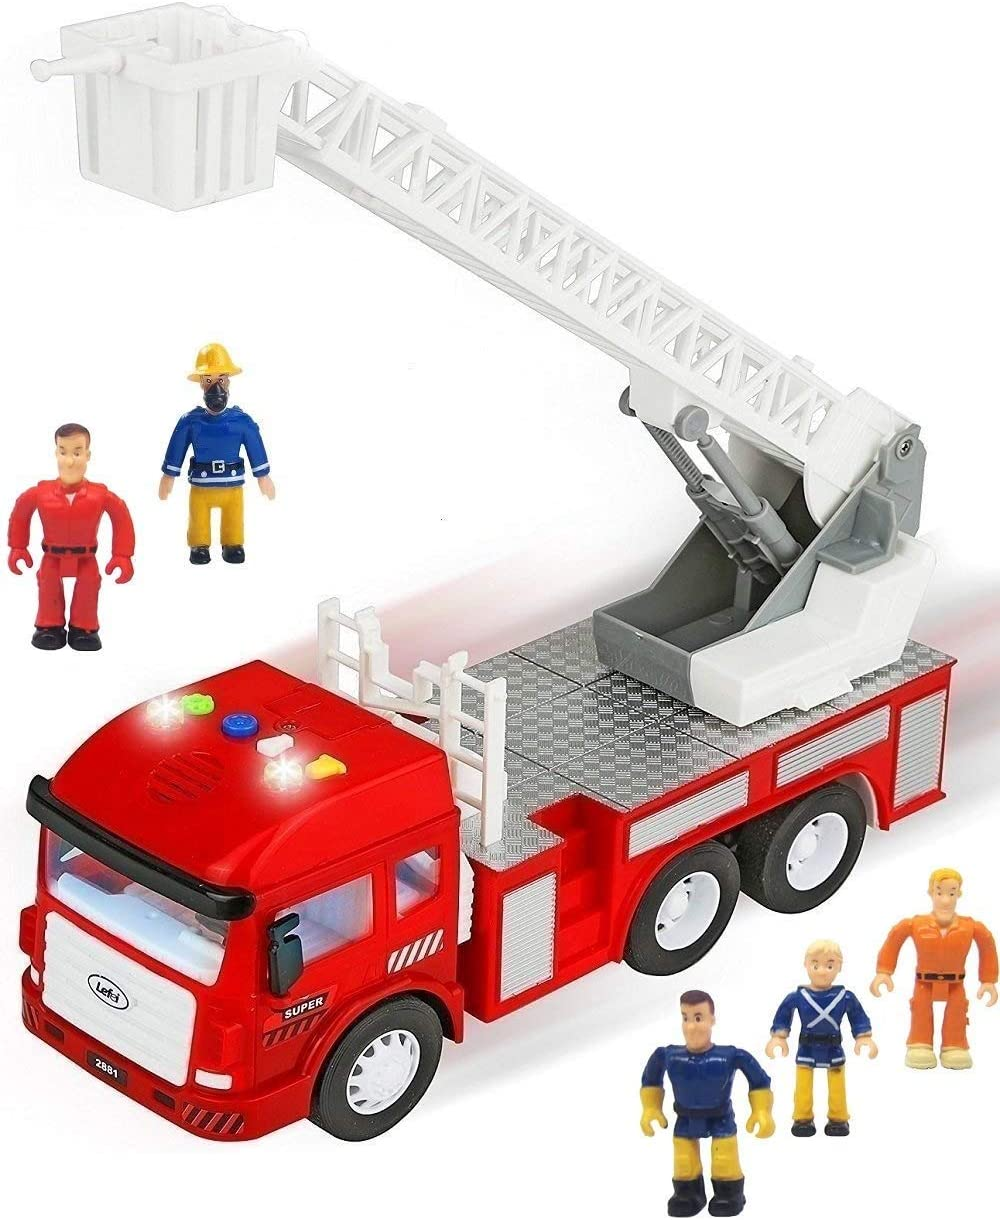 Hey Toy Fire Truck with Extending Ladder Battery-Powered Lights Siren Sounds and Bump-n-Go Movement for Toddlers Boys and Girls Play Brown